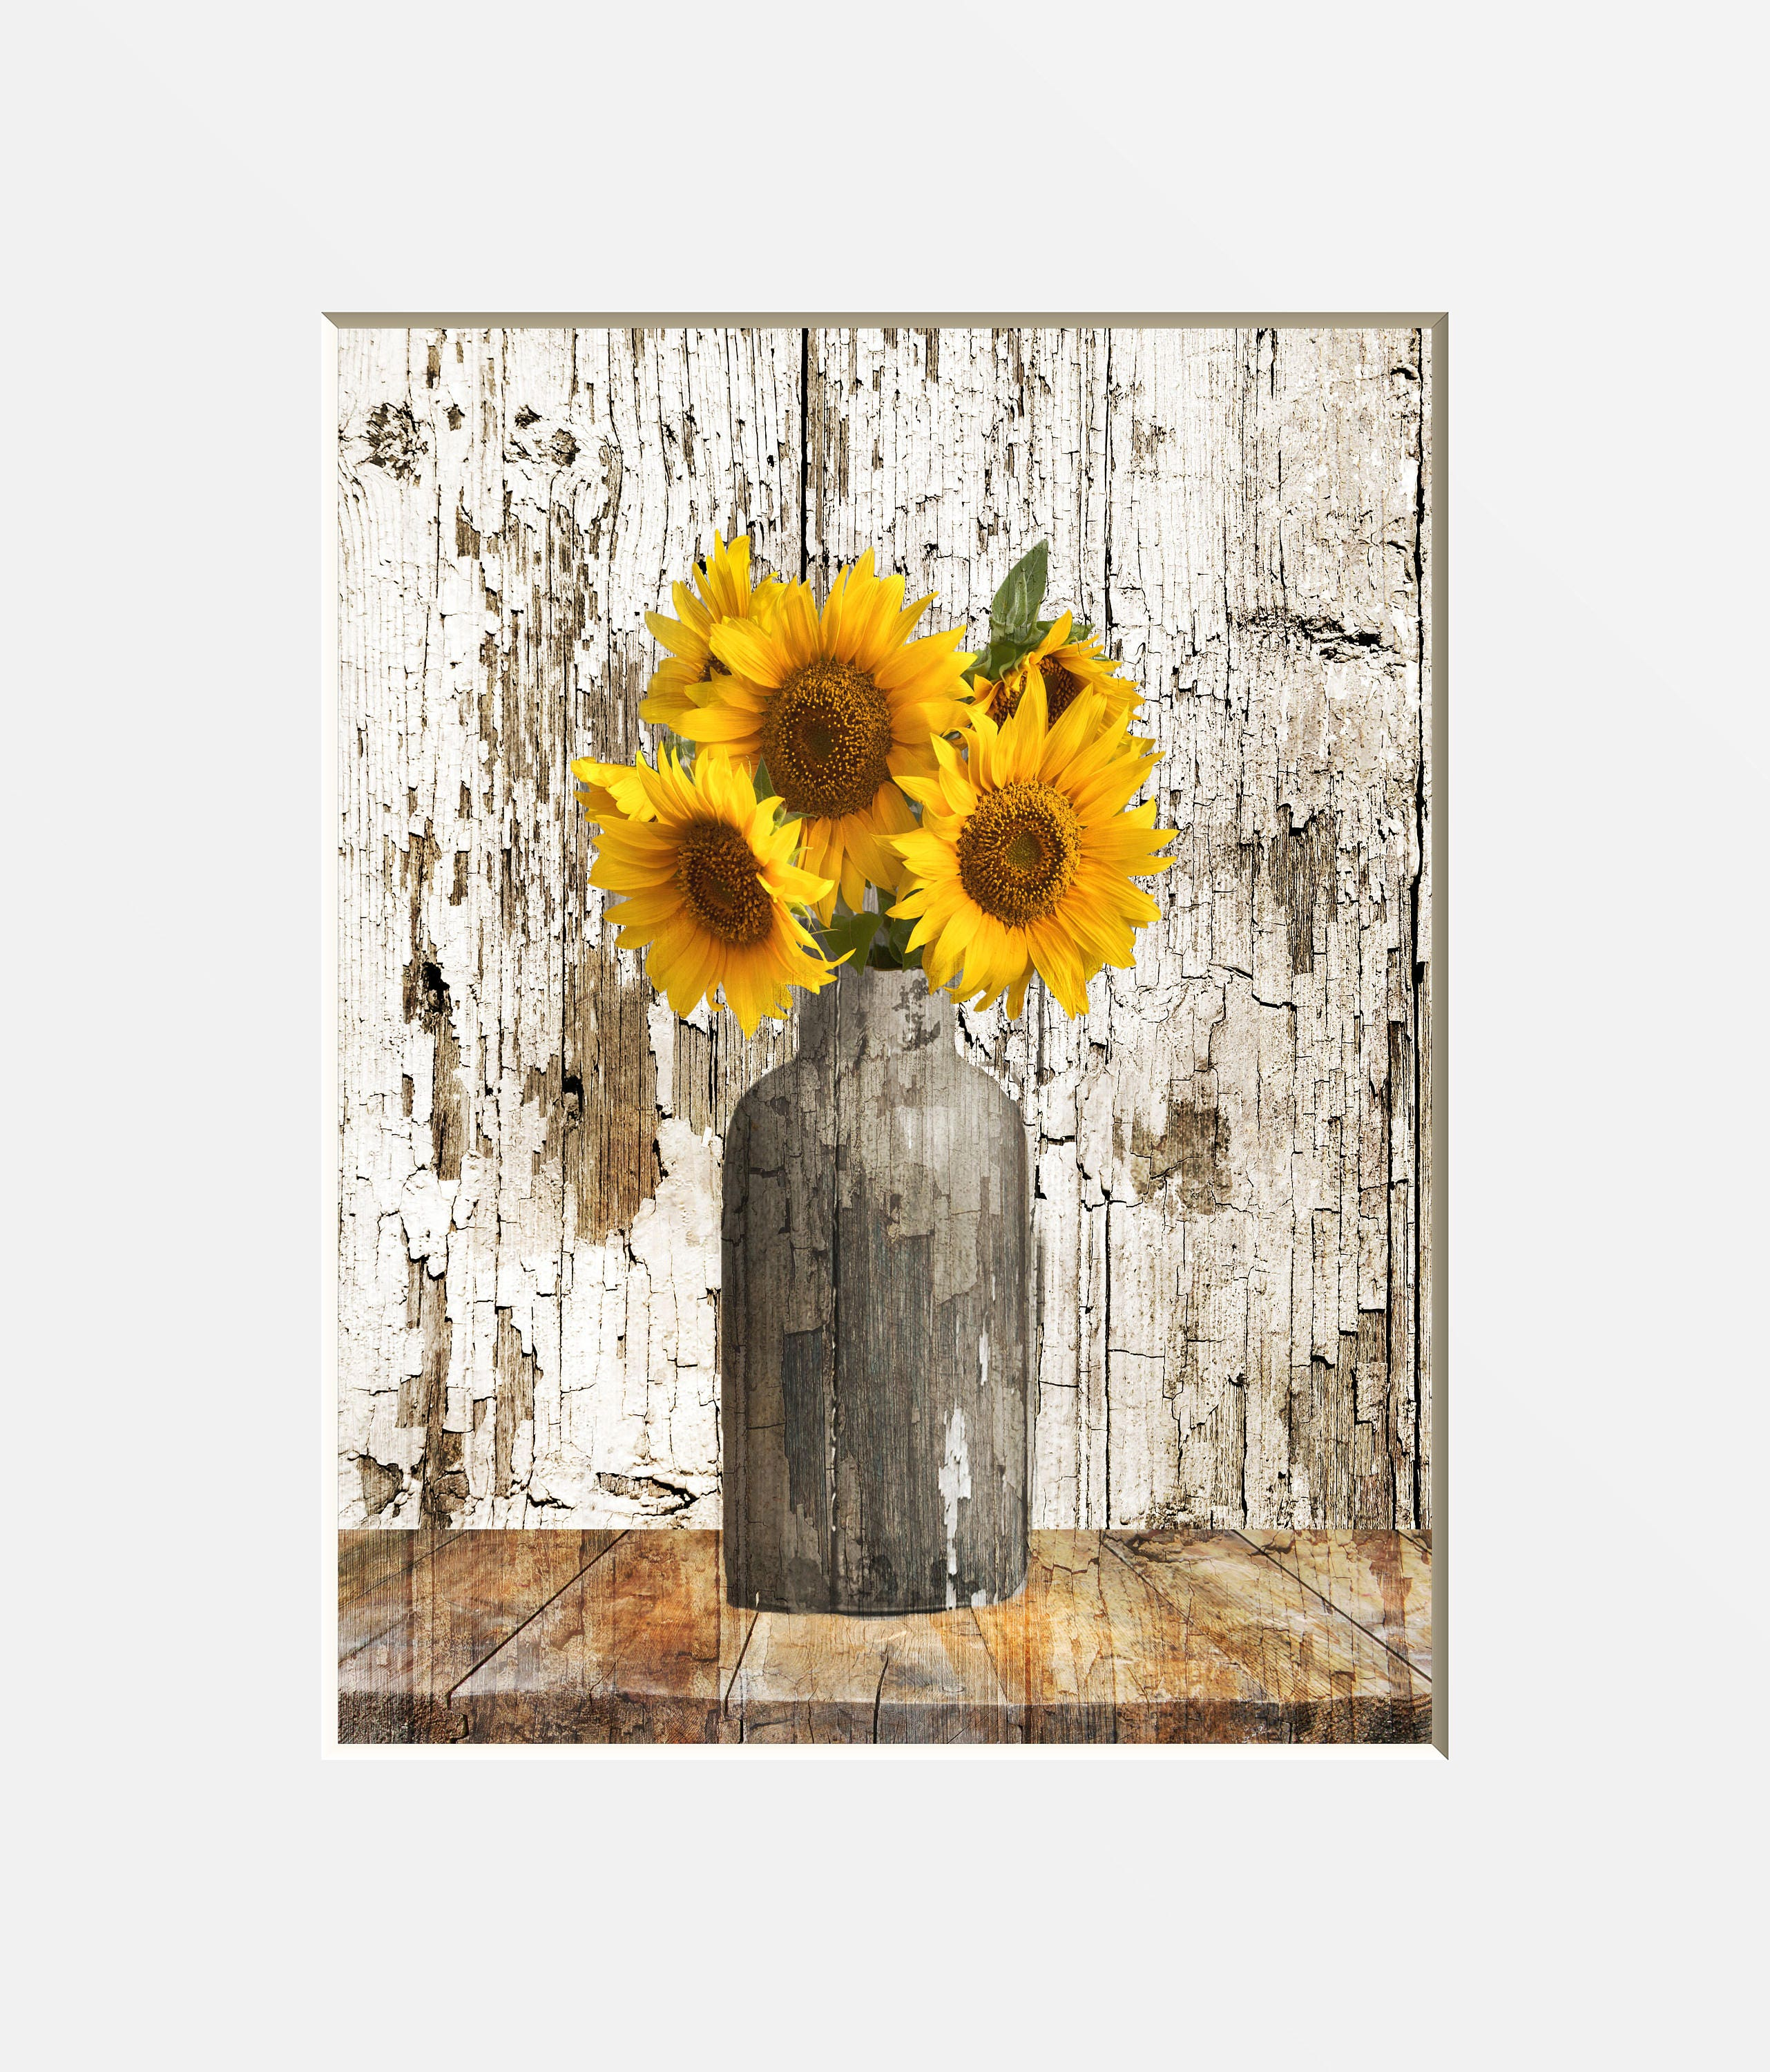 Rustic Home Decor: Rustic Sunflower Decor Rustic Home Decor Farmhouse Wall